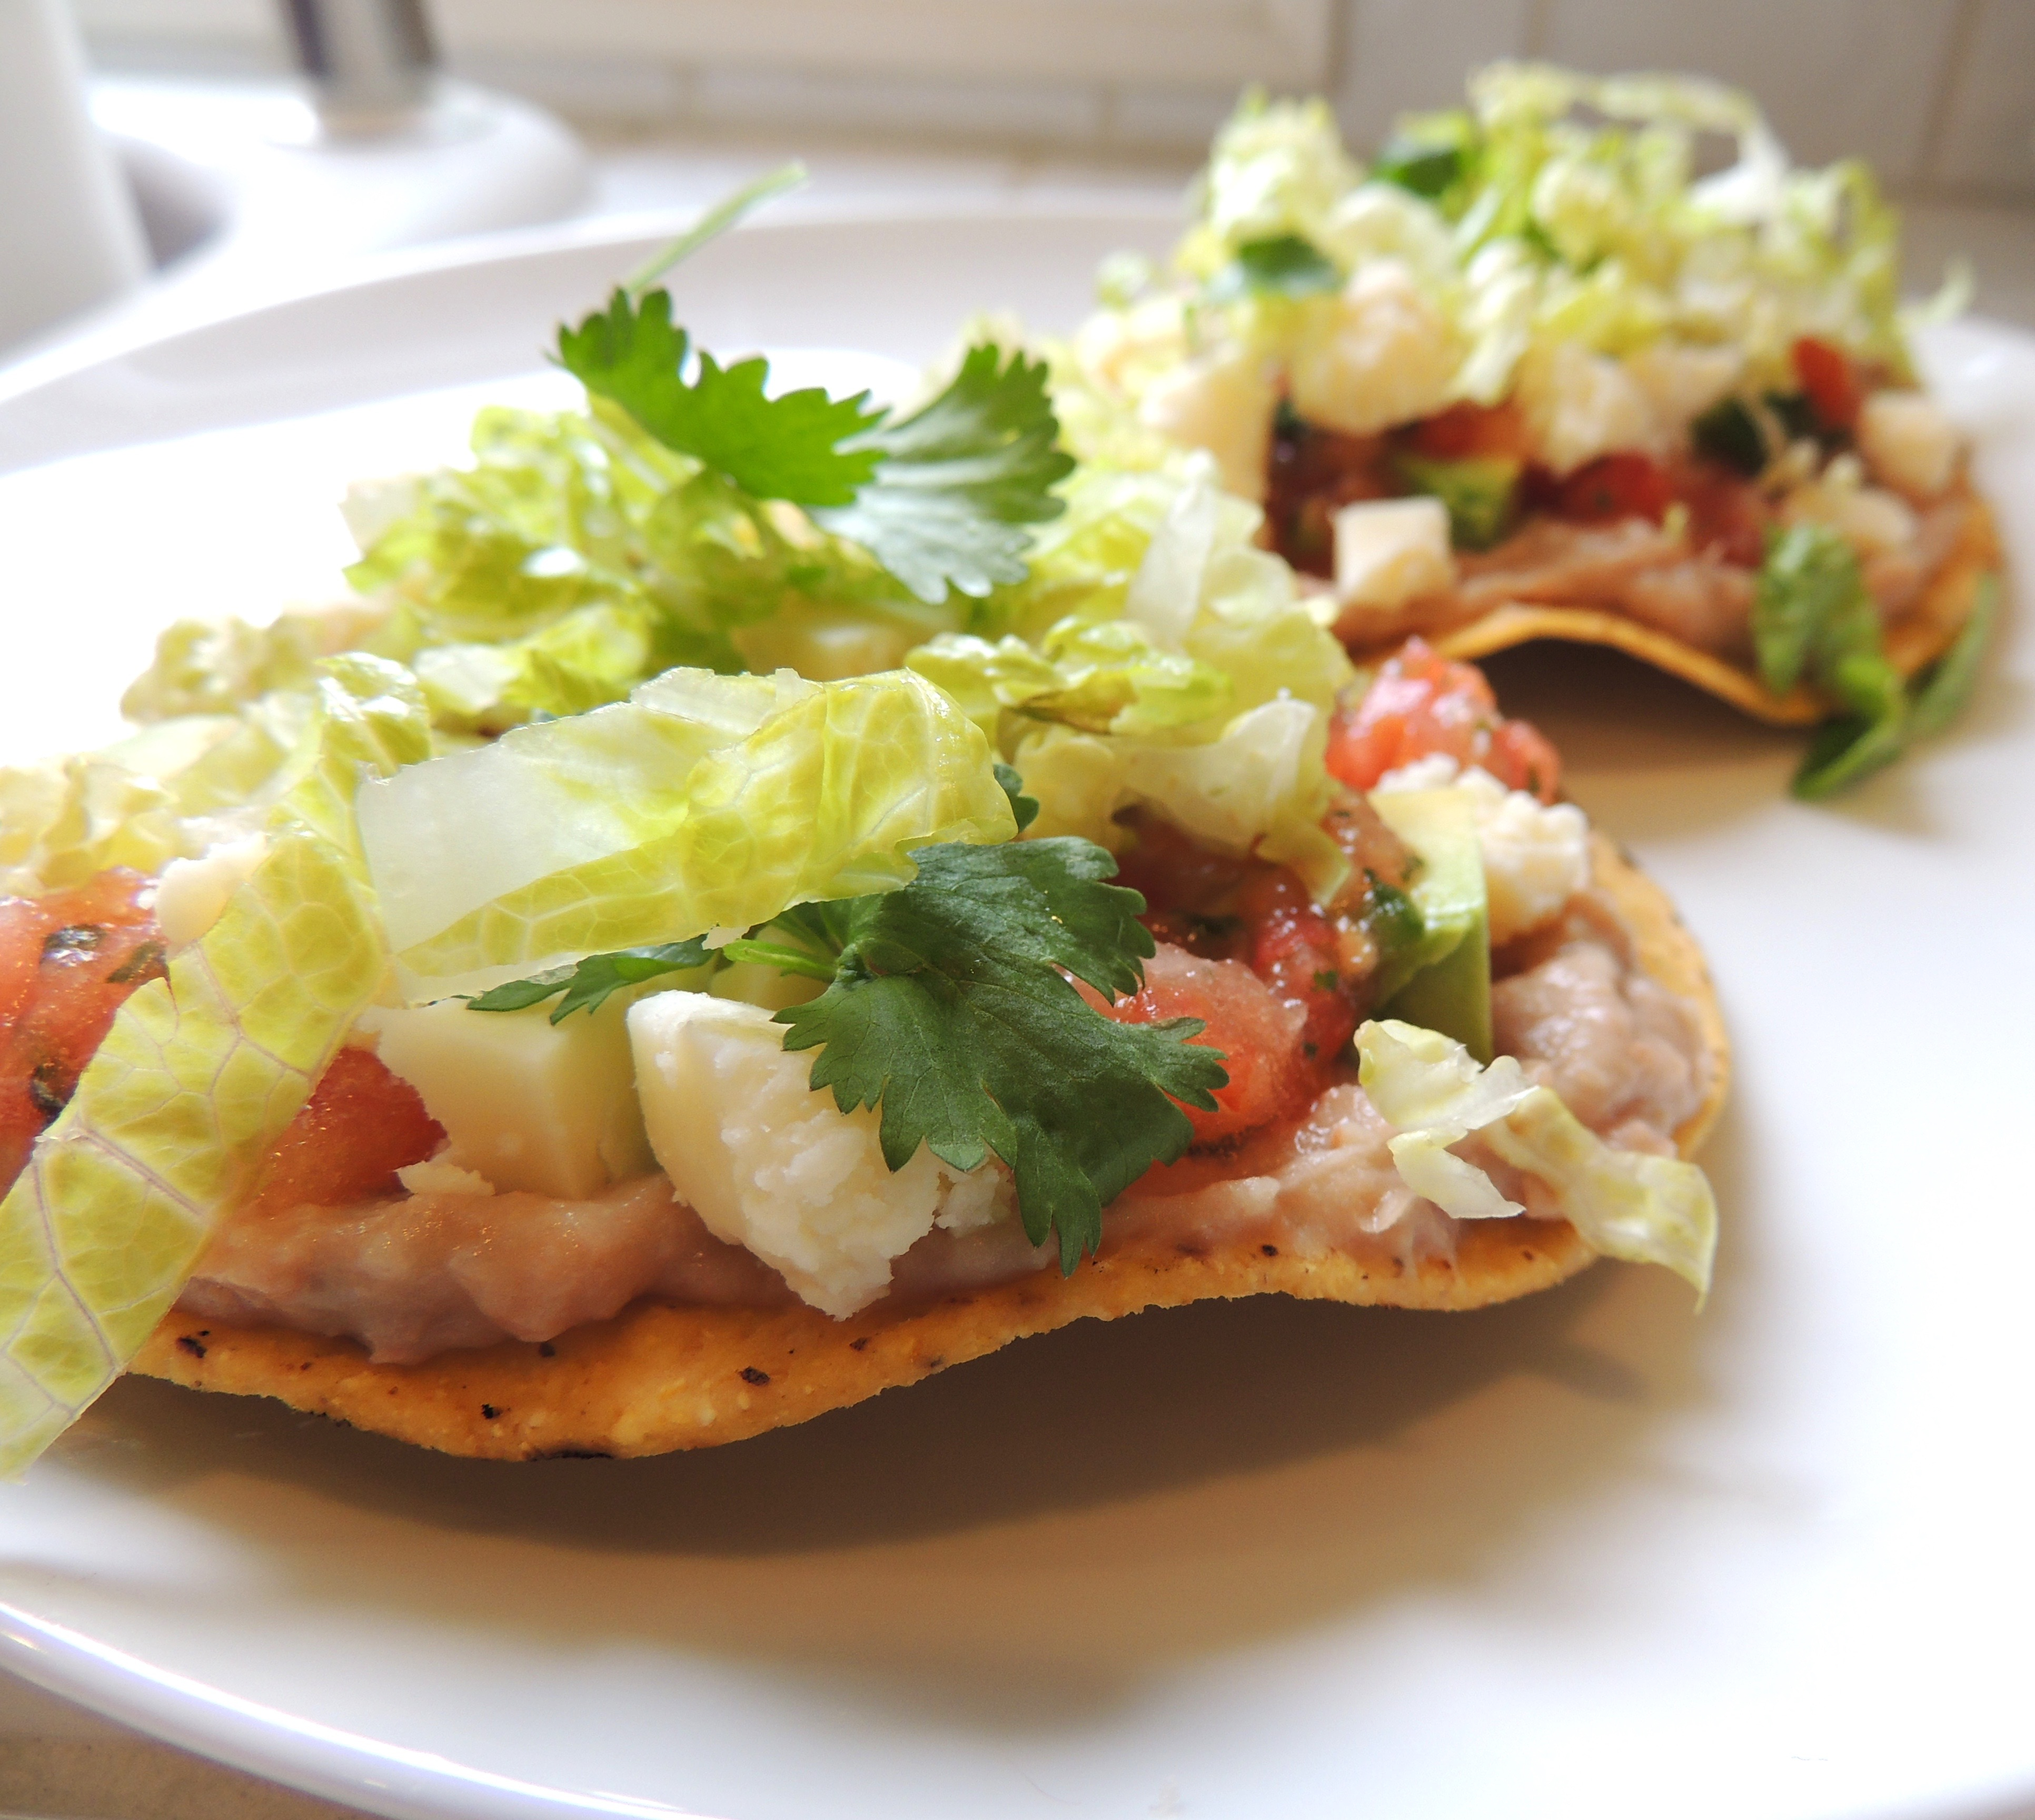 Living Healthy In Seattle: Tostadas With Pinto Bean Spread & Spicy Salsa